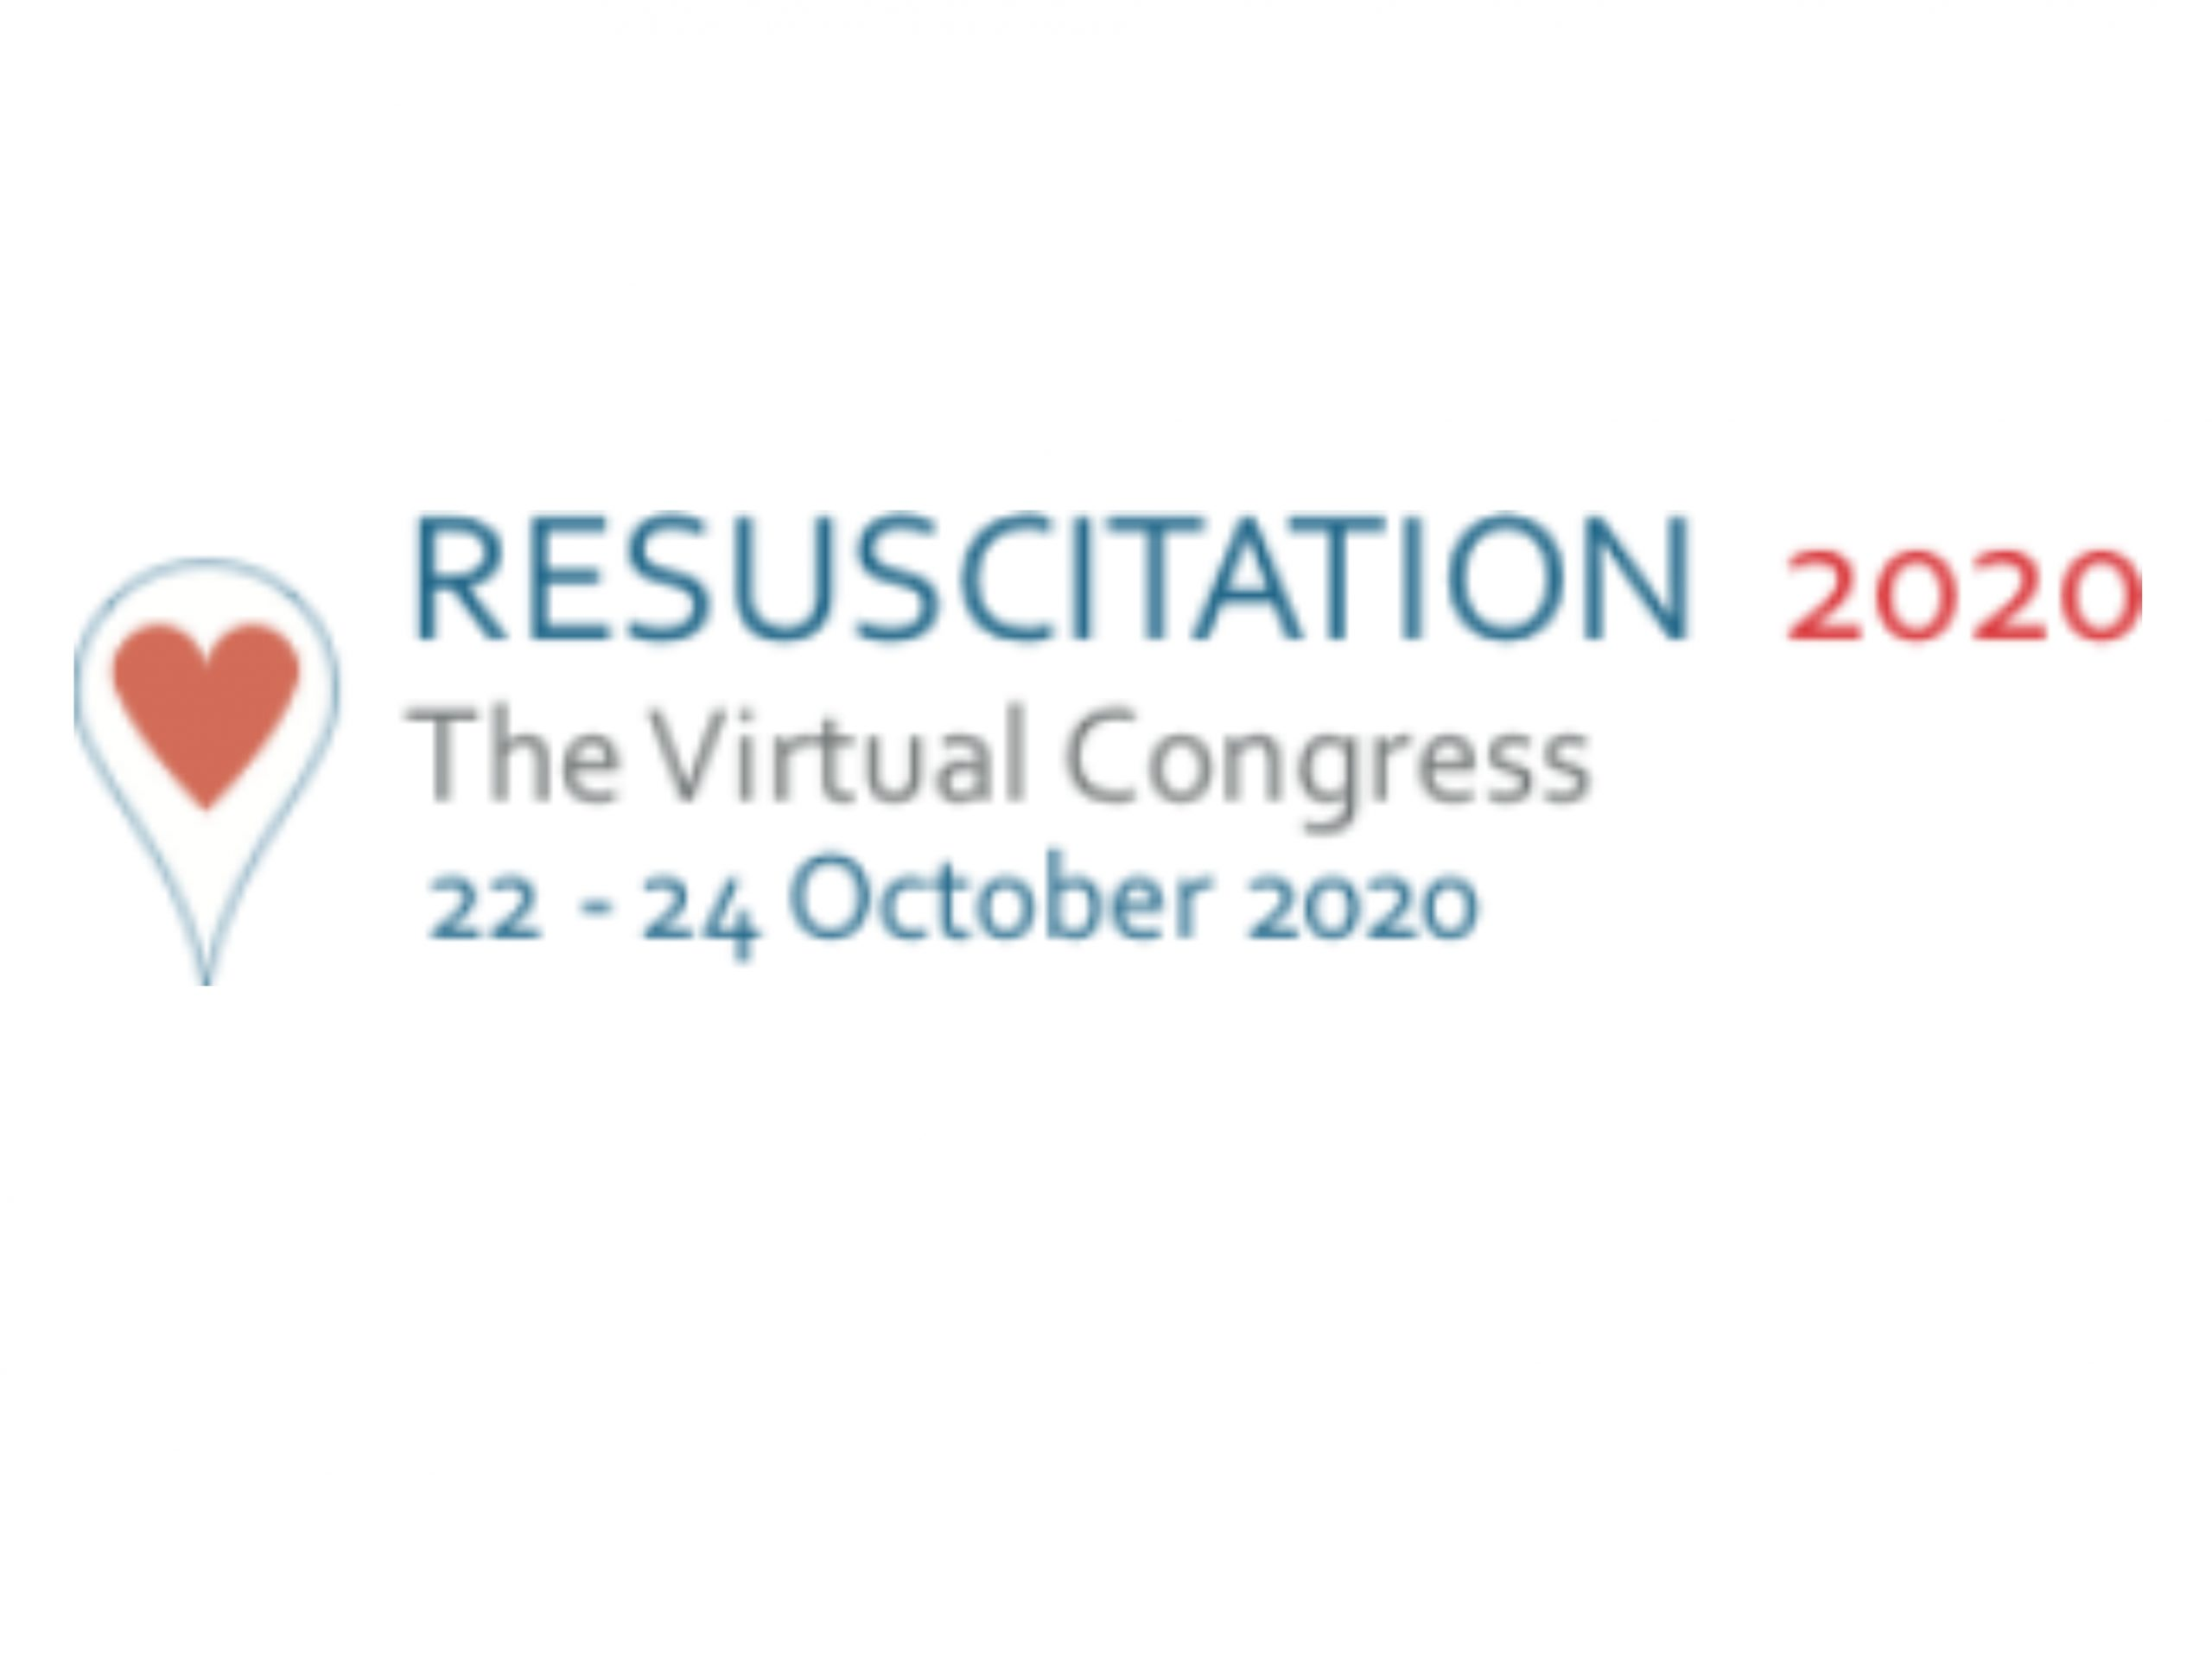 RESUSCITATION2020 the Virtual Congress